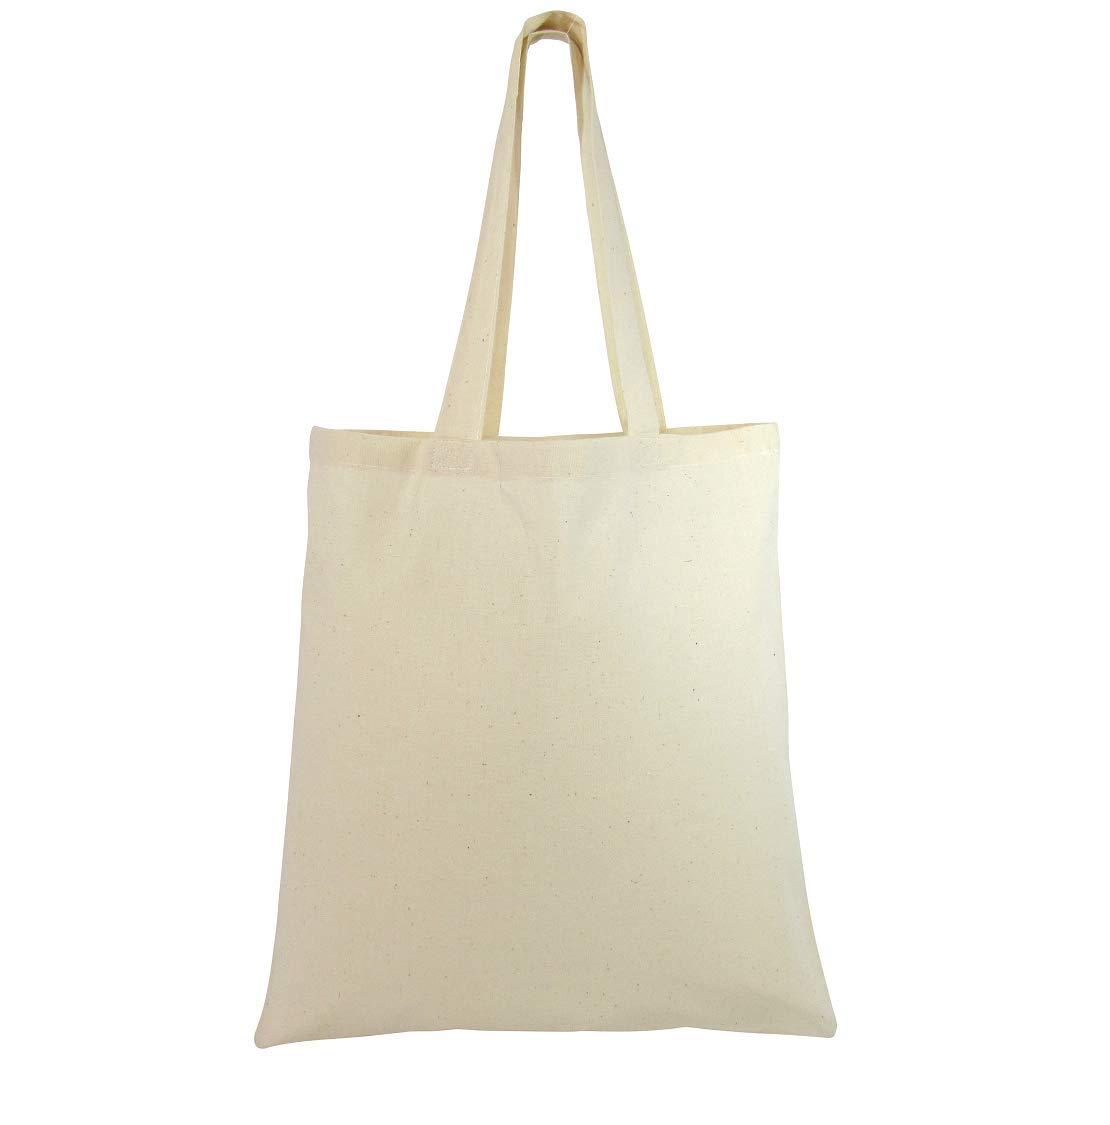 Natural Cotton Canvas Tote Bags Bulk Plain Fabric for Crafts, DIY, Vinyl, Decorate, Shopping, Groceries, Teacher, Books, Gifts, Welcome Bag, Diaper Bag, Beach (Natural, 12)